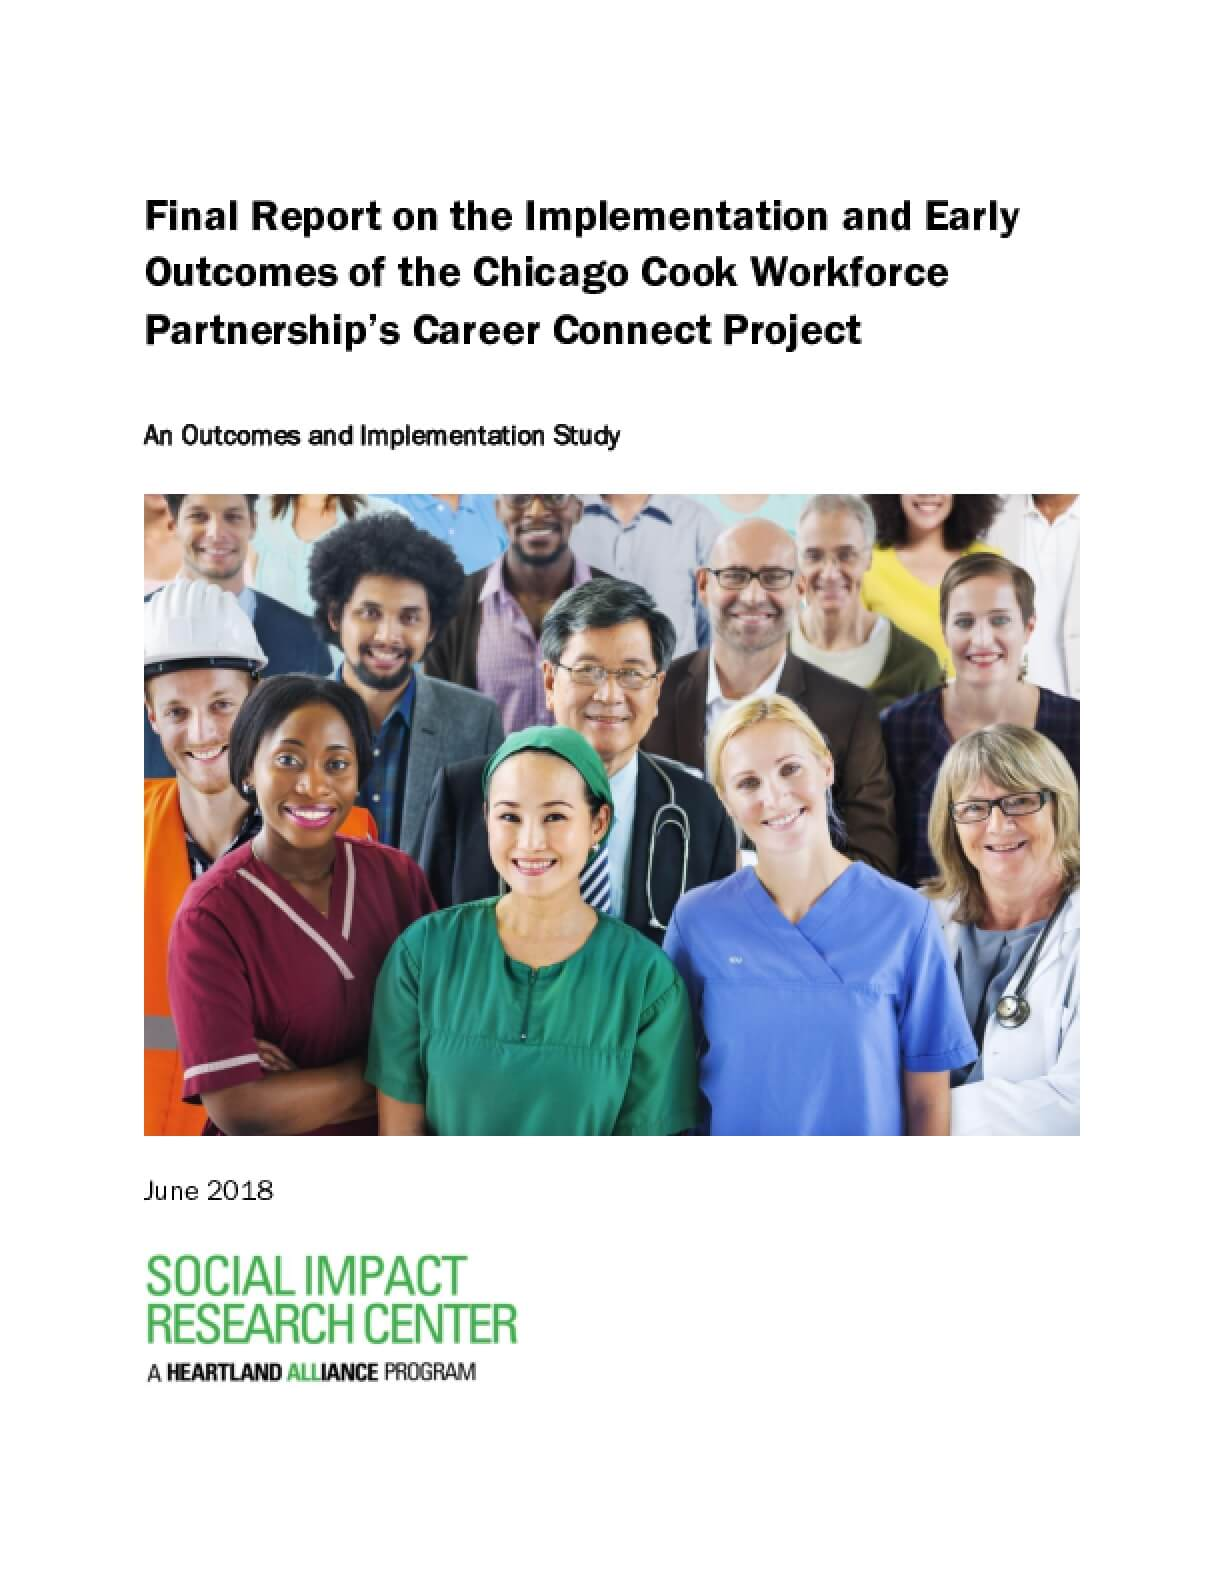 Report on the Implementation and Early Outcomes of the Chicago Cook Workforce Partnership's Career Connect Project